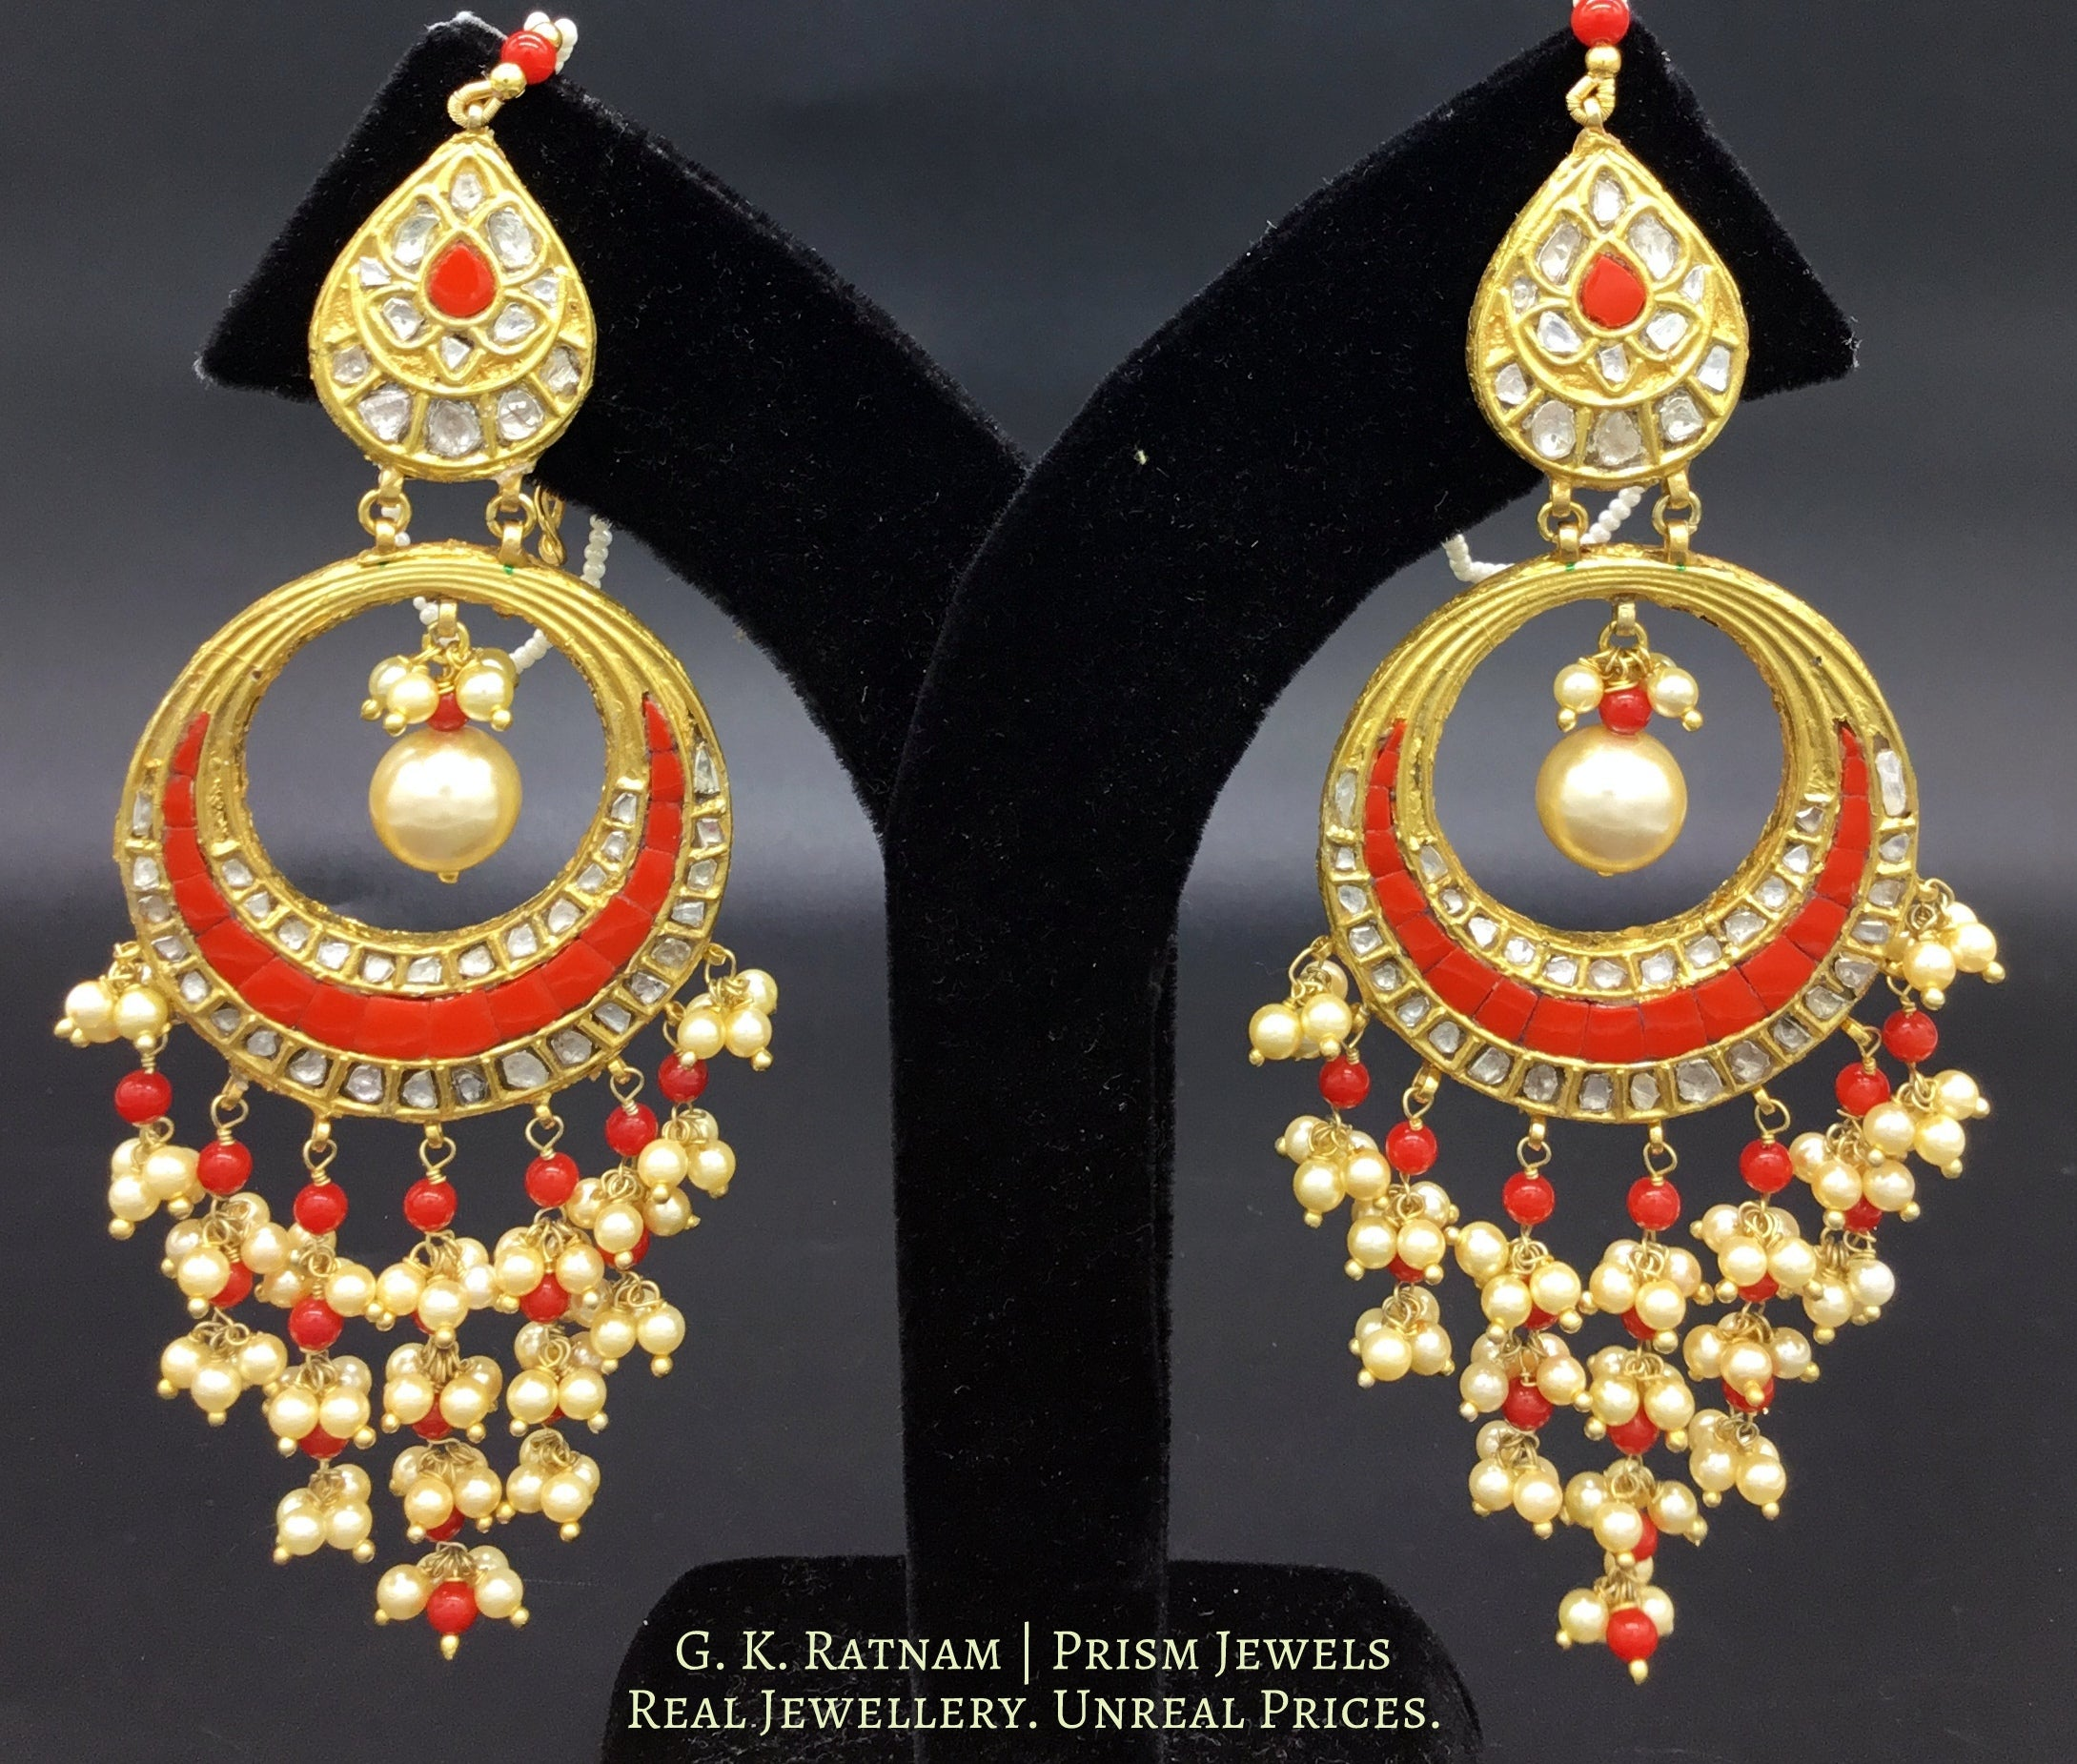 23k Gold and DIamond Polki Chand Bali Earring Pair with corals strung in chandelier style - gold diamond polki kundan meena jadau jewellery